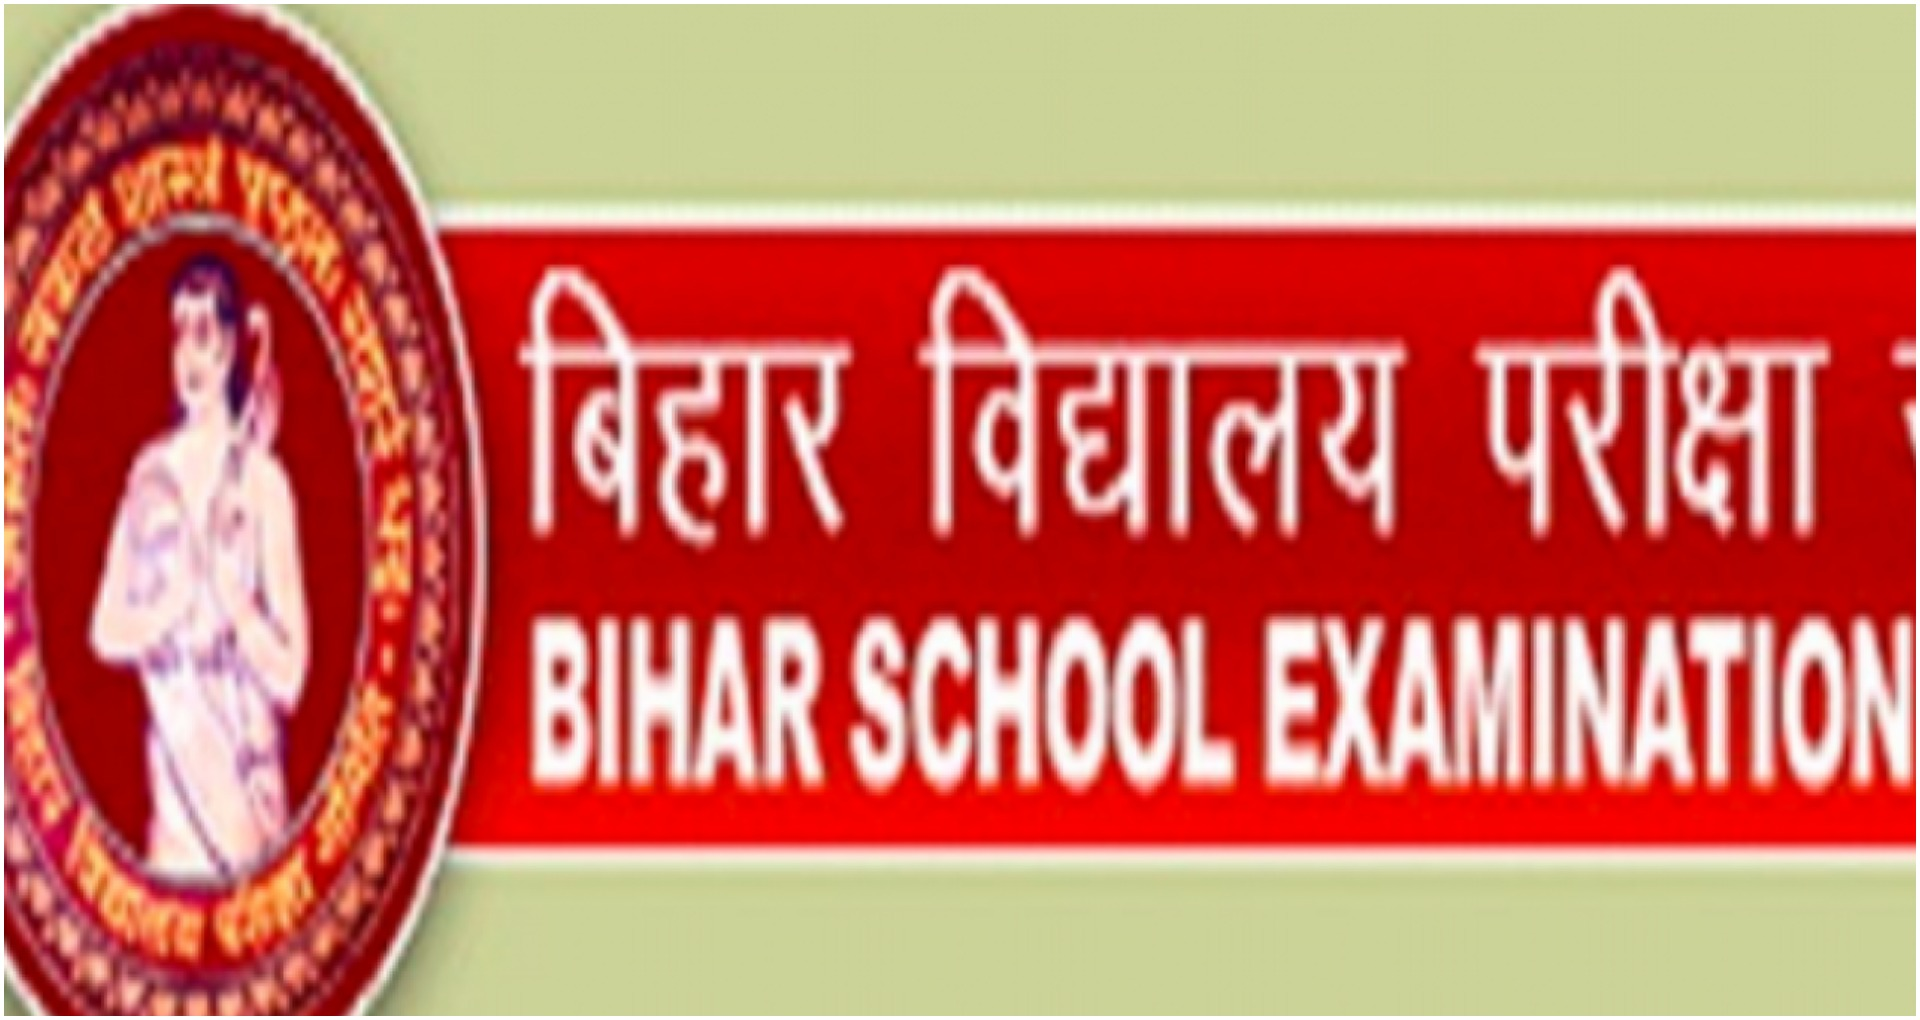 Bihar Board, 10th Exam